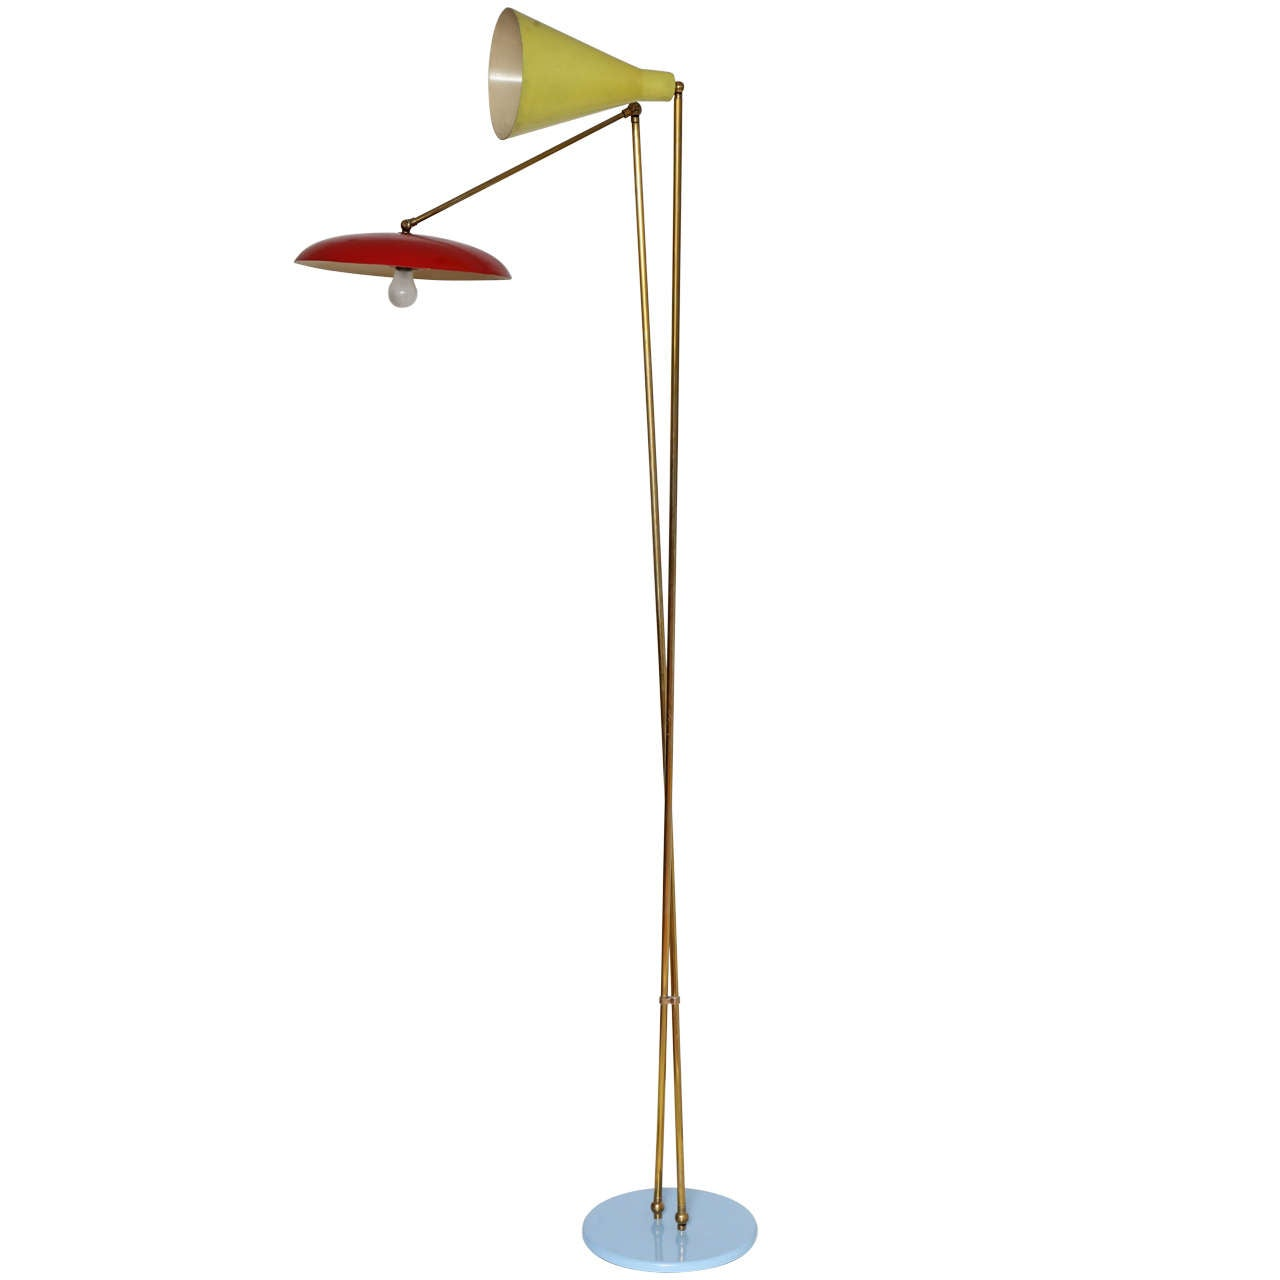 Stilnovo, Italian Mid-Century Modern Floor Lamp, 1955 For Sale at ...